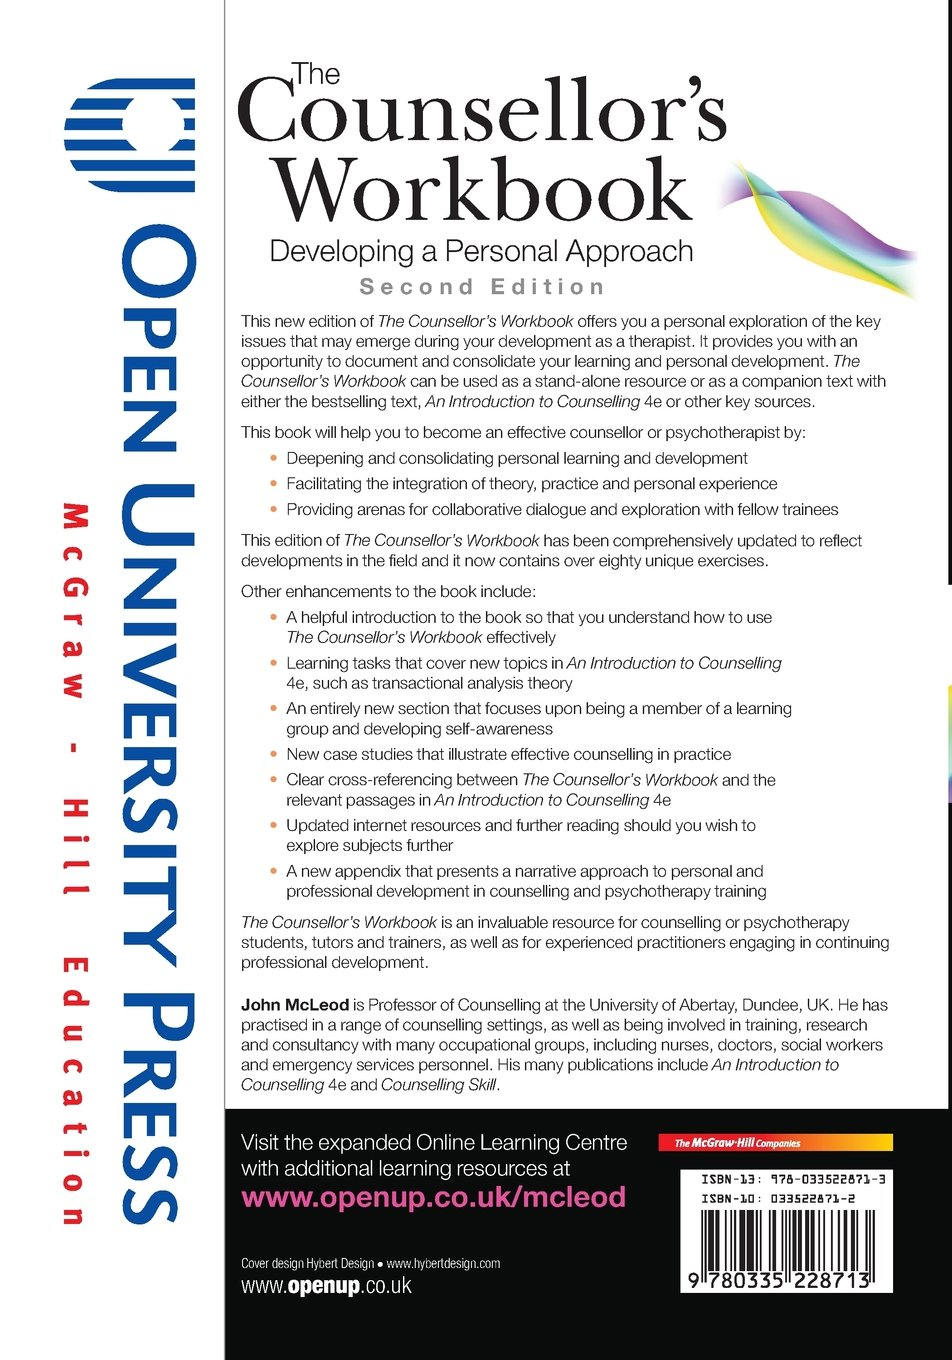 Workbooks workbook methods : The counsellor's workbook: developing a personal approach: Amazon ...